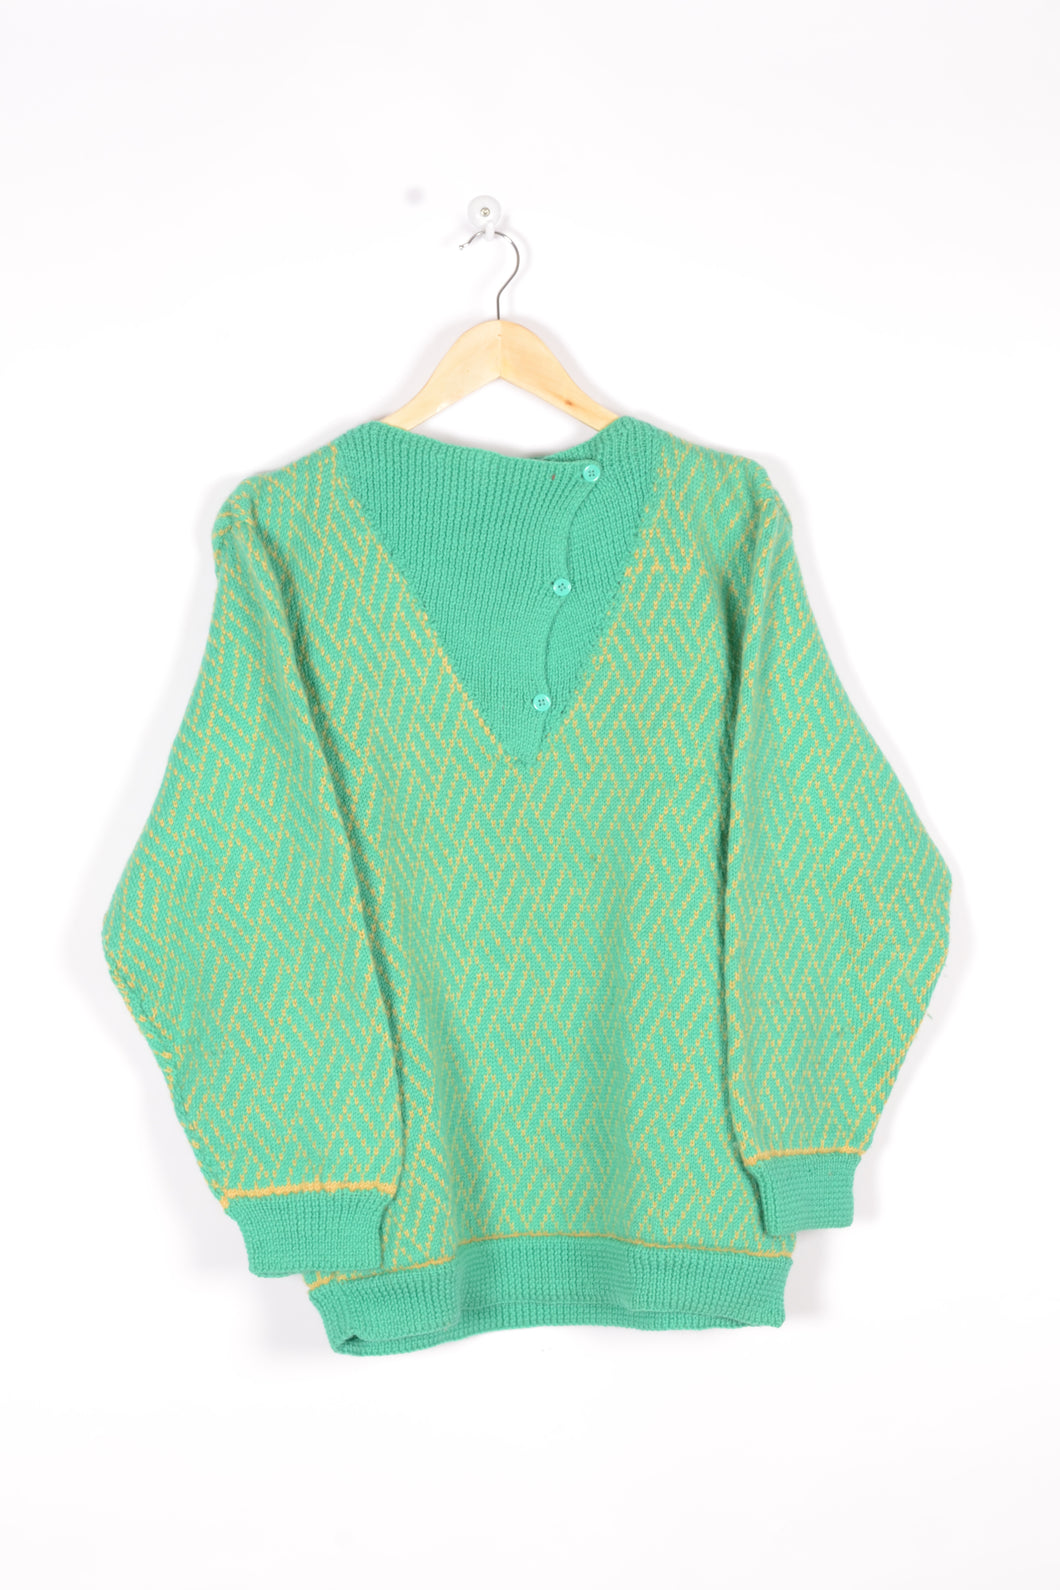 70s Knitted Sweater Vintage Green/Yellow Medium M